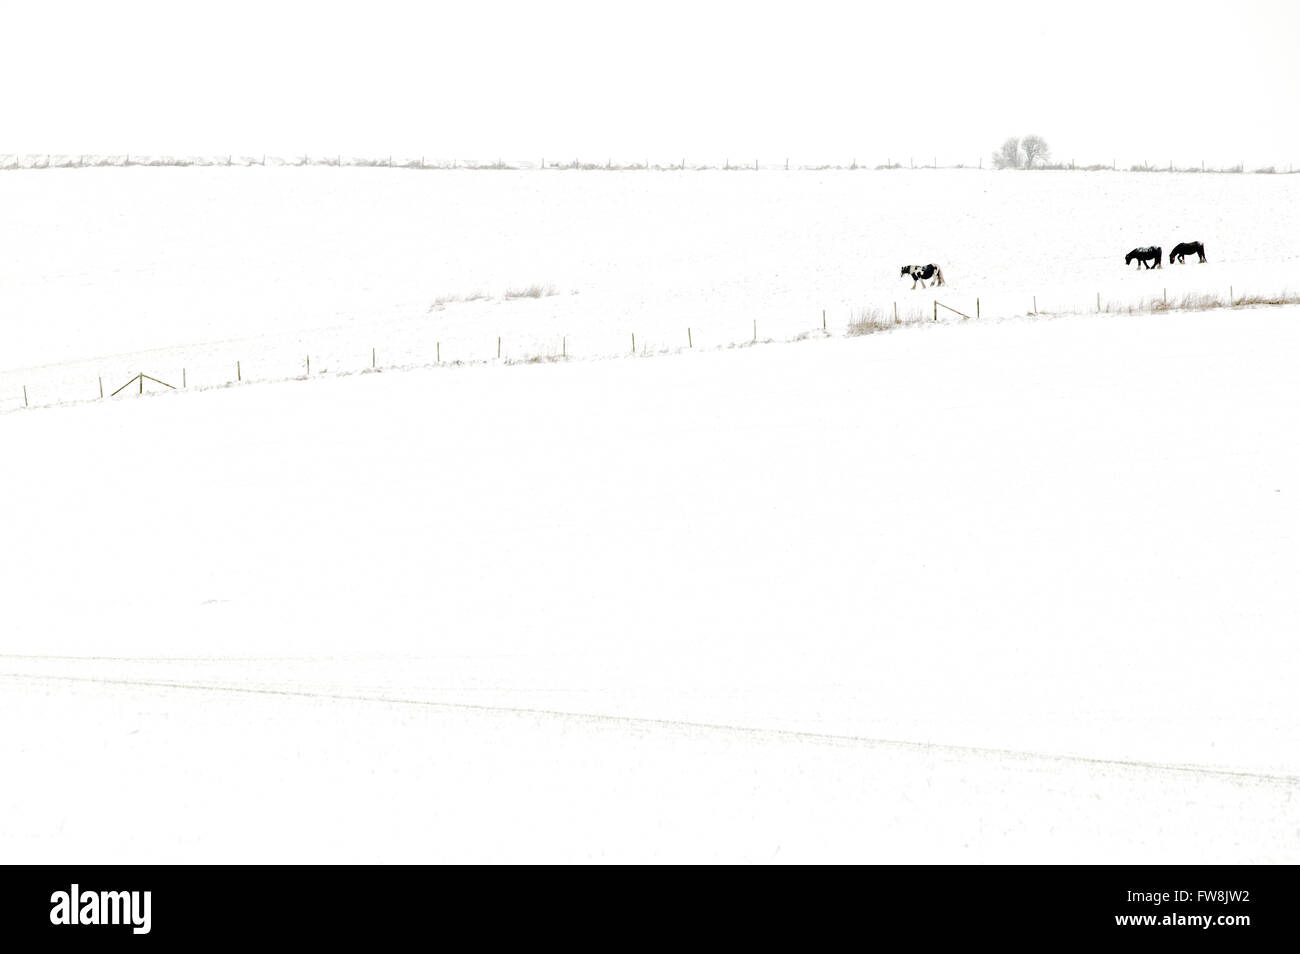 Snow covered fields and hills in the british countryside with horses silhouetted against the snow in the distance.. - Stock Image